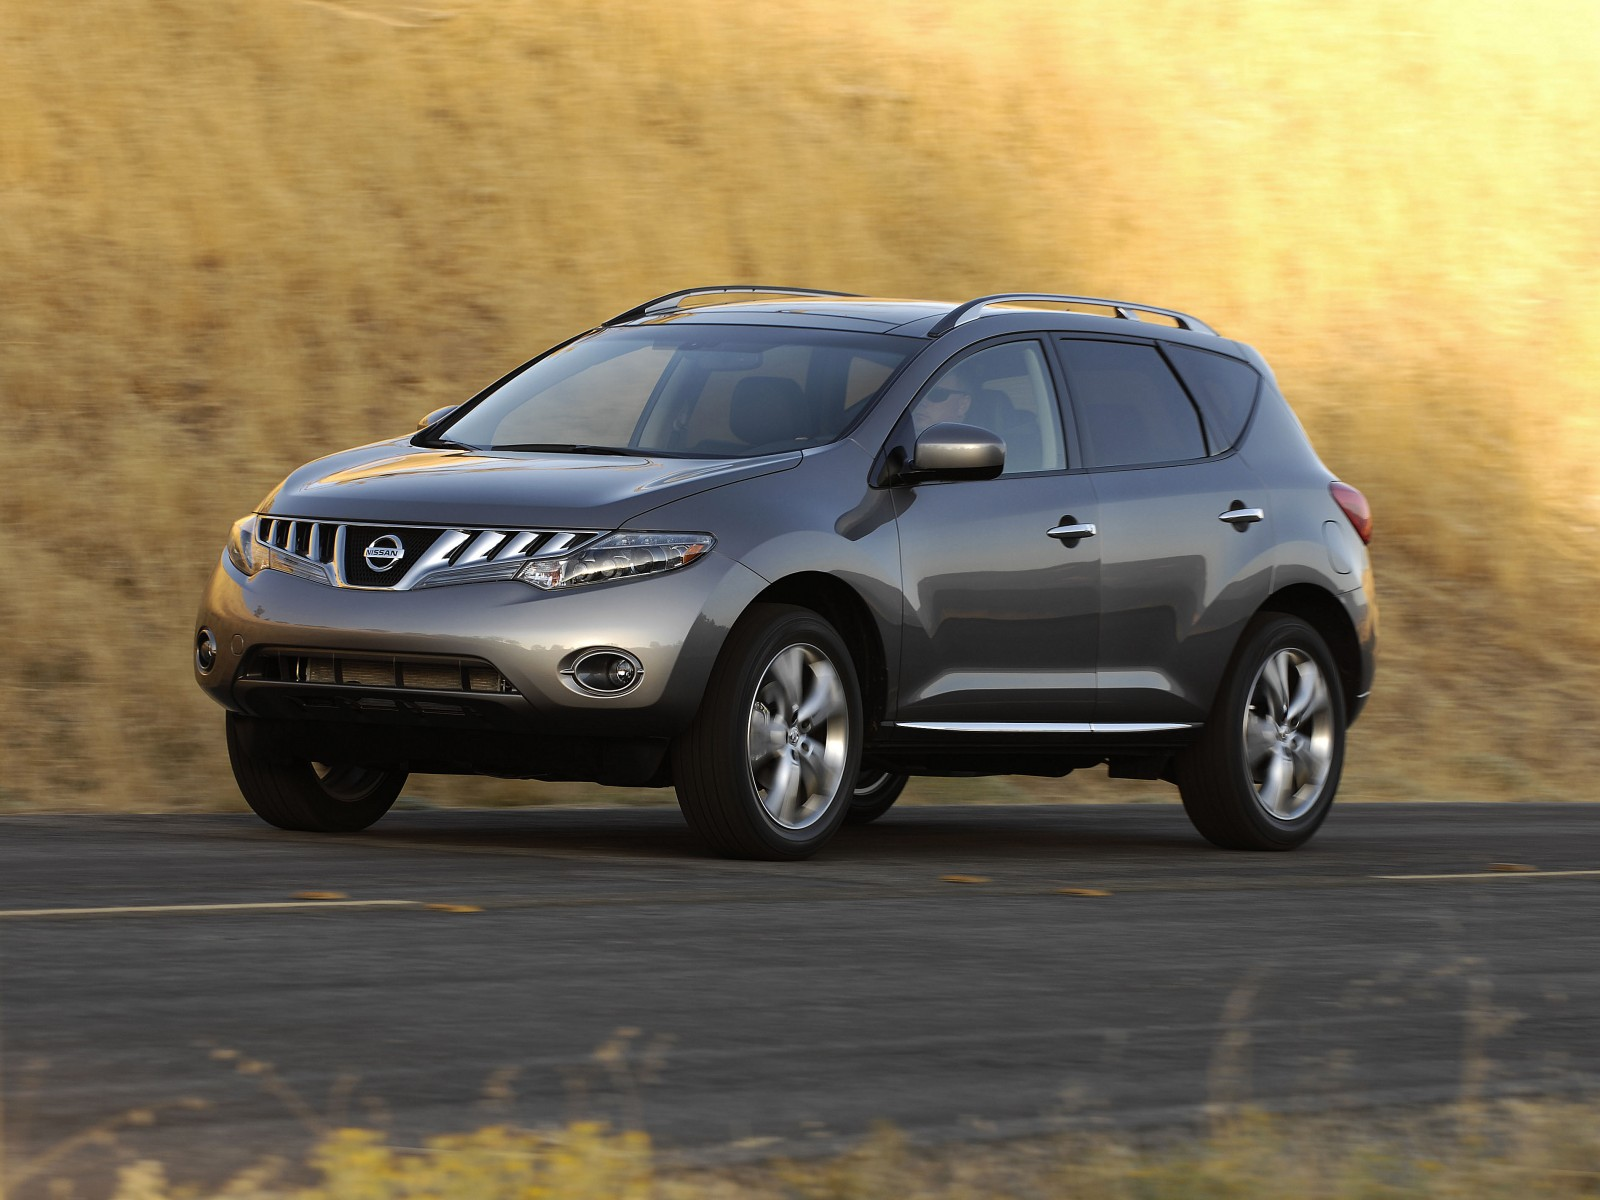 2009 nissan murano le awd wallpapers pictures. Black Bedroom Furniture Sets. Home Design Ideas